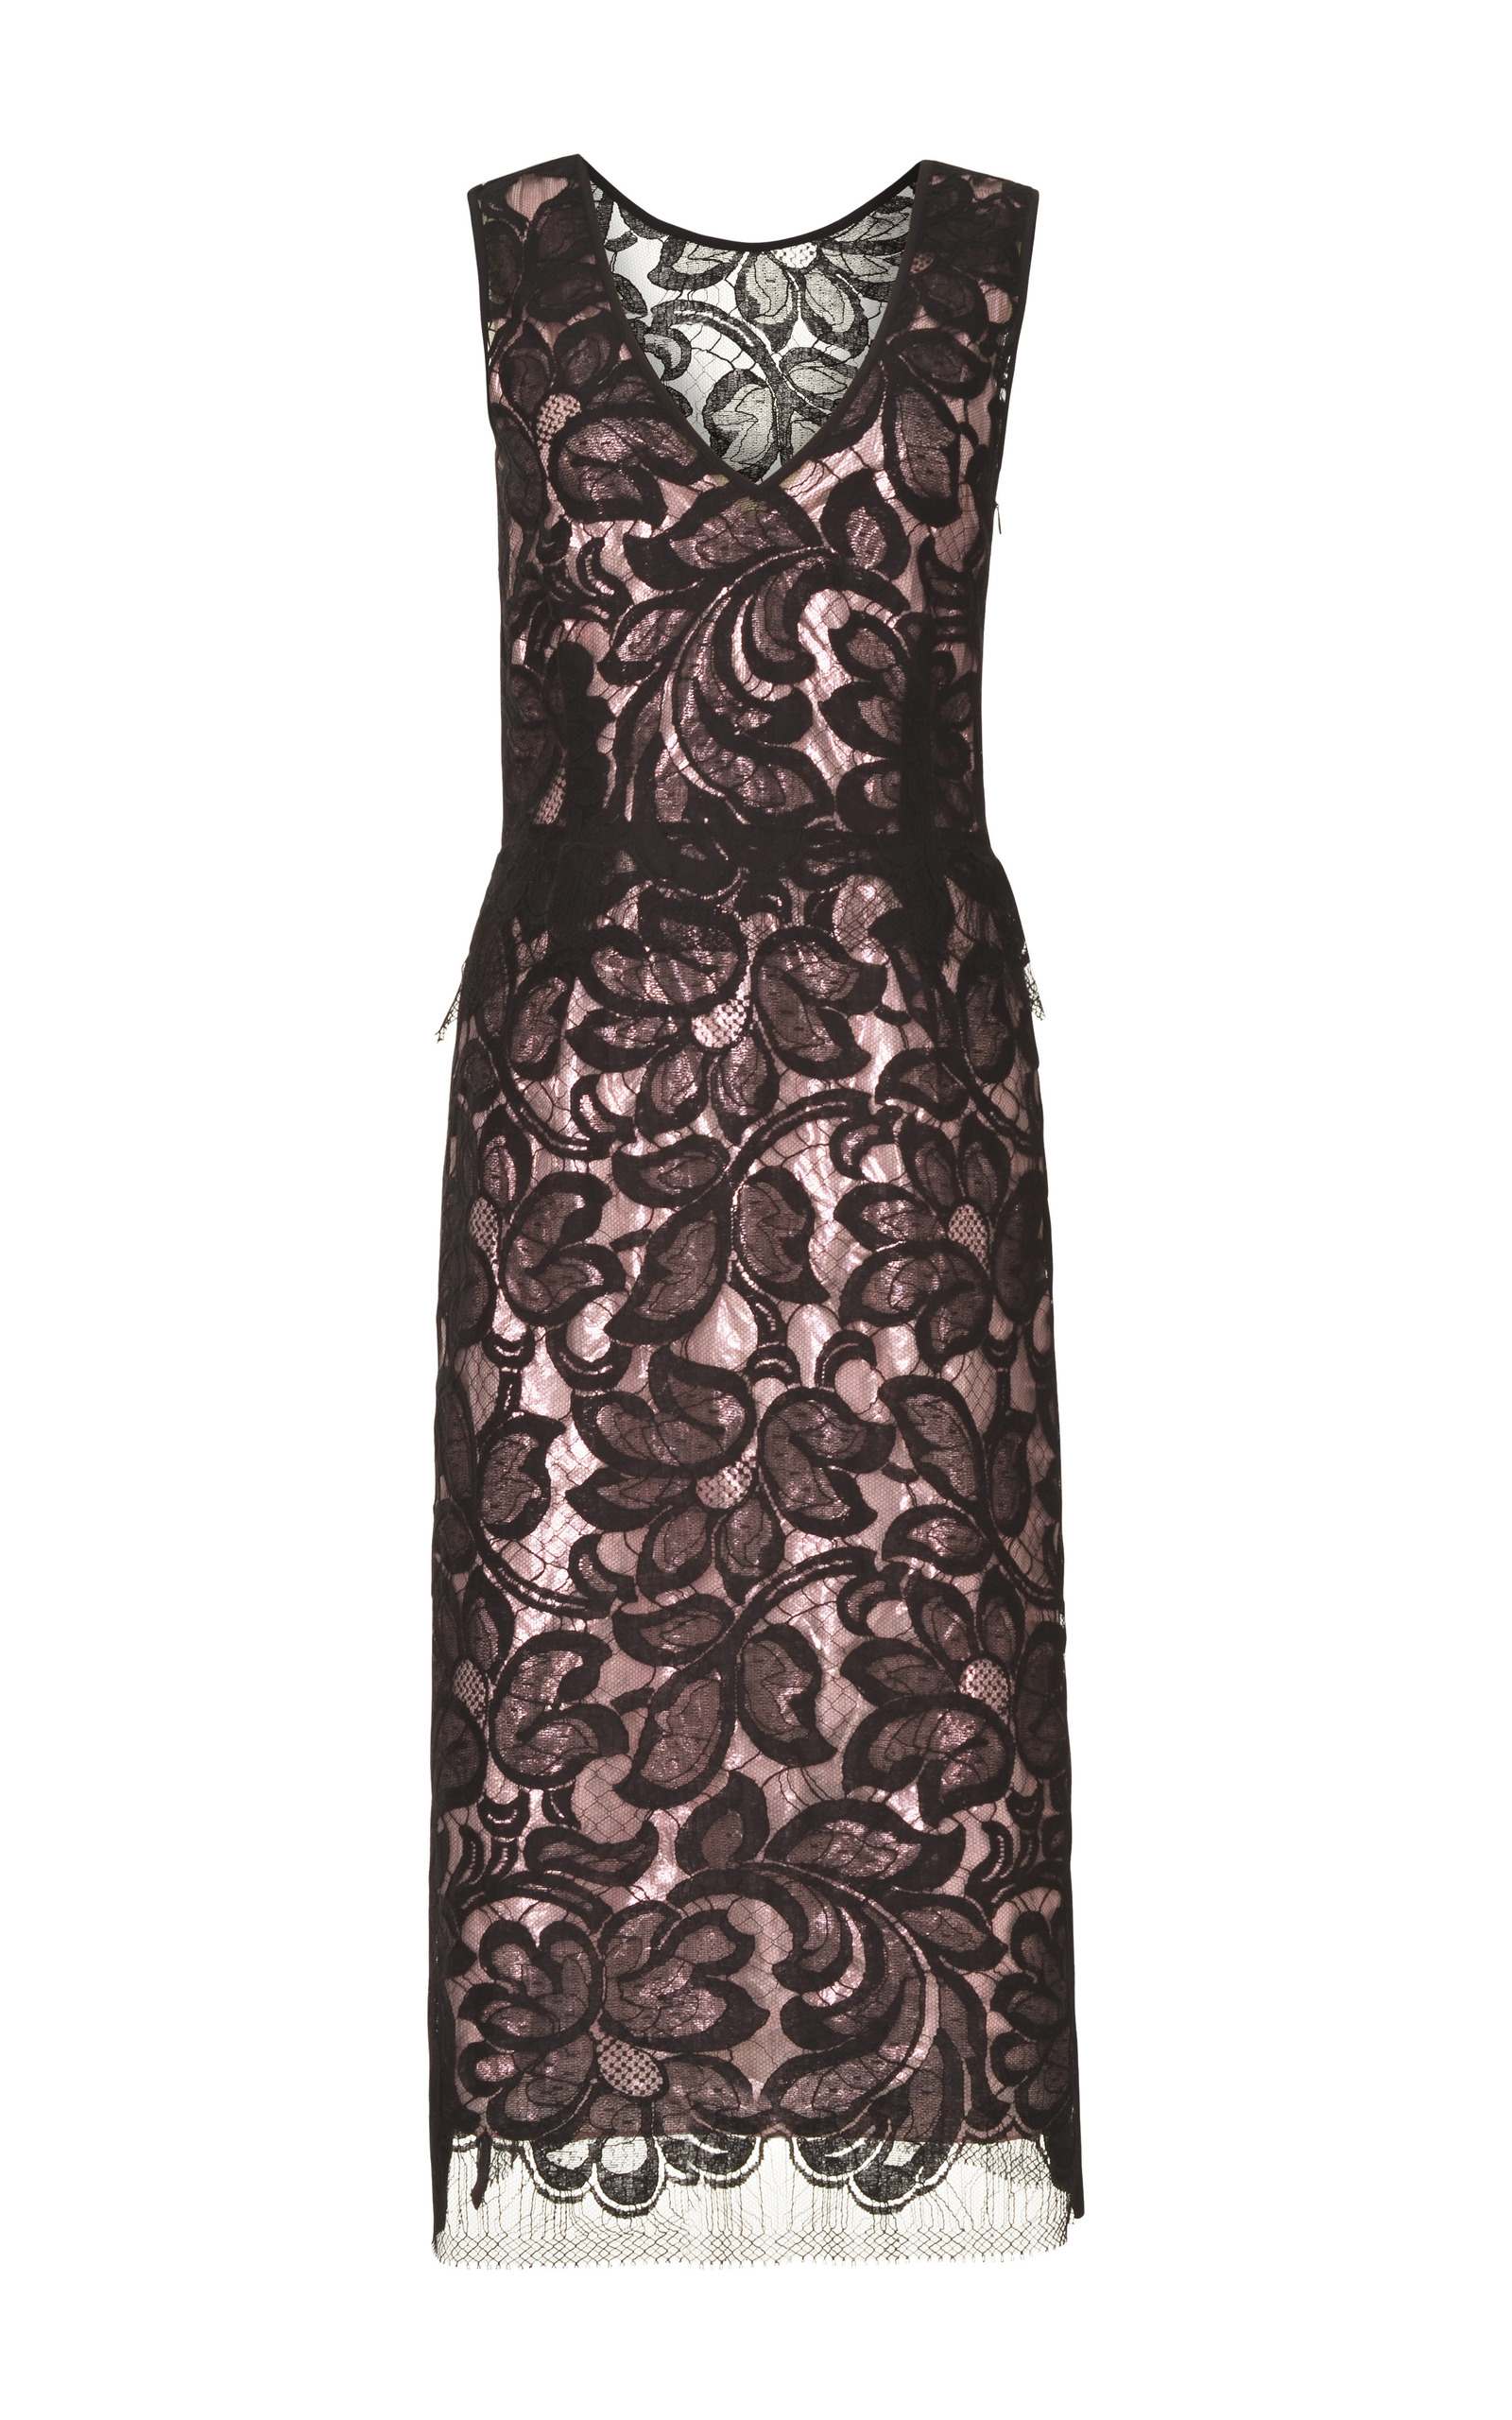 91d7bdb471e1 TomeBlack Lace Dress With And Pink Silk Lame Lining. CLOSE. Loading